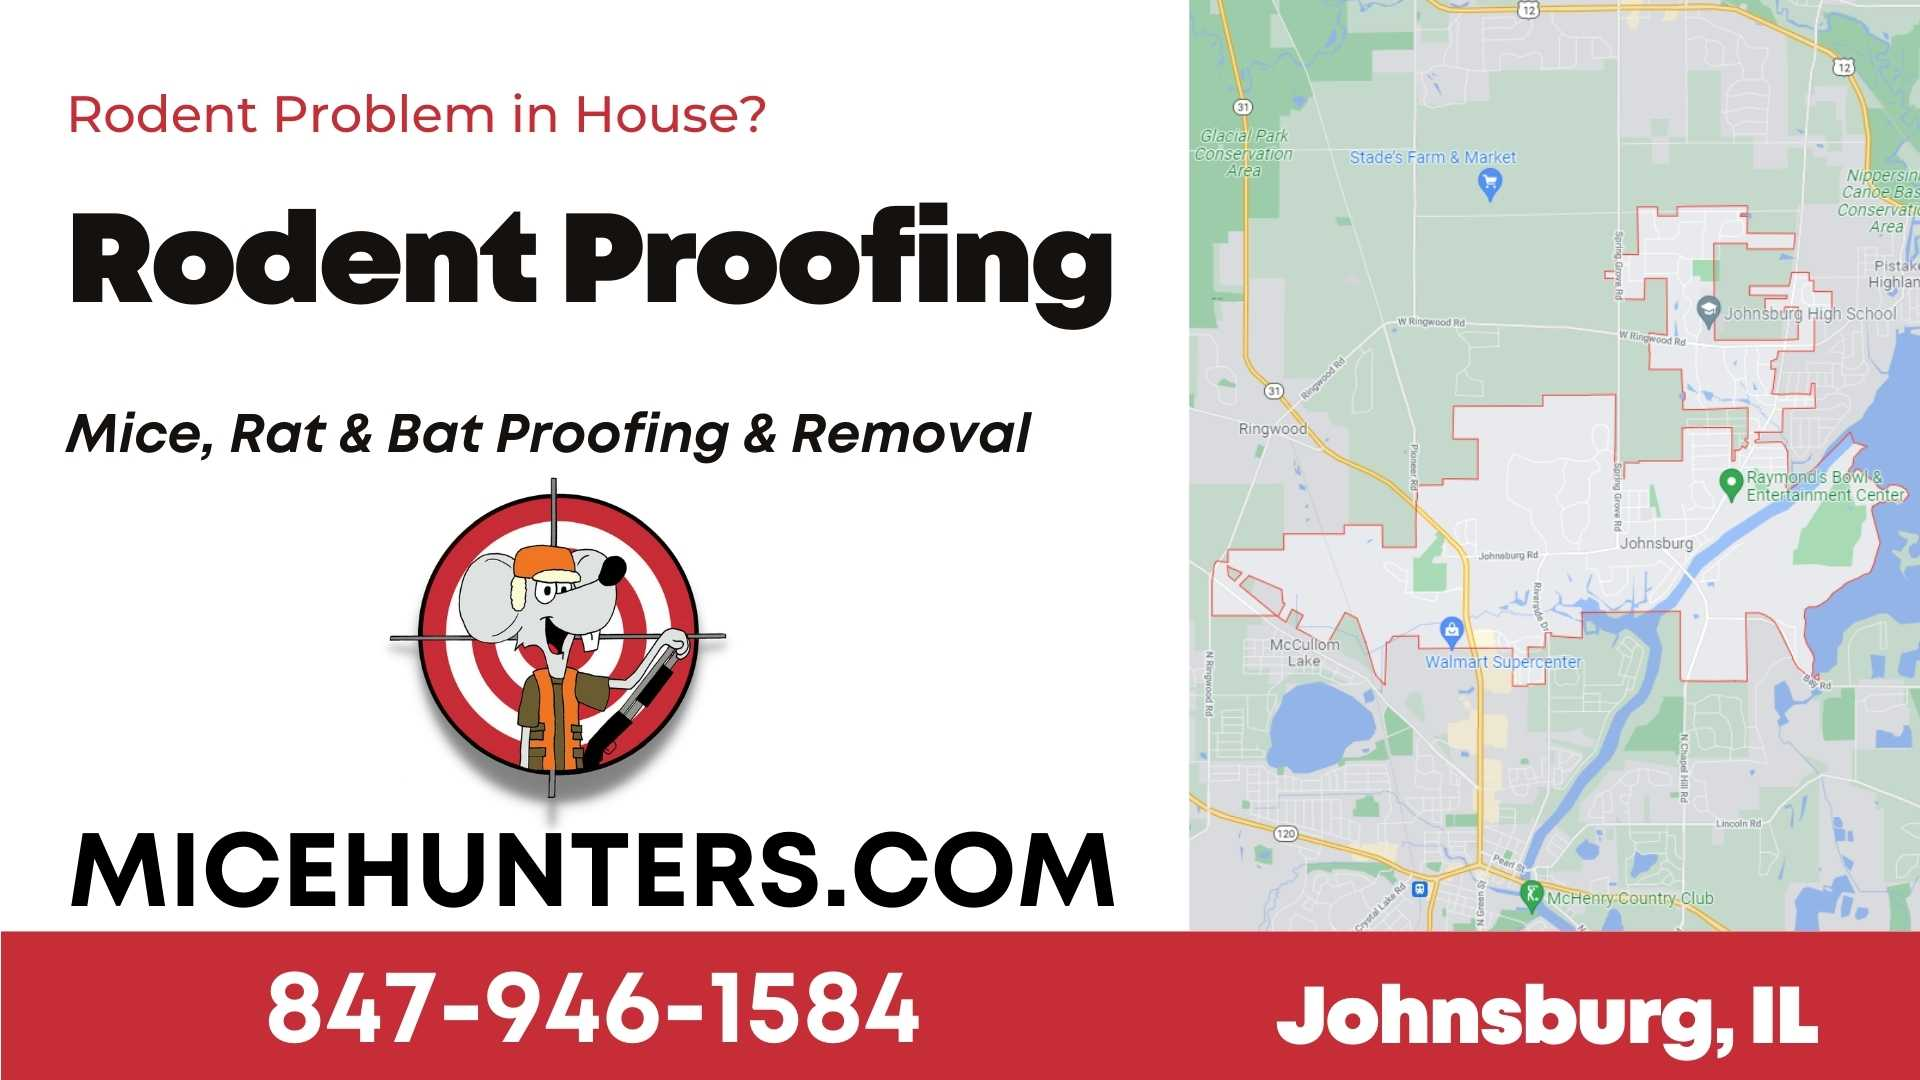 Johnsburg Rodent and Mice Proofing Exterminator